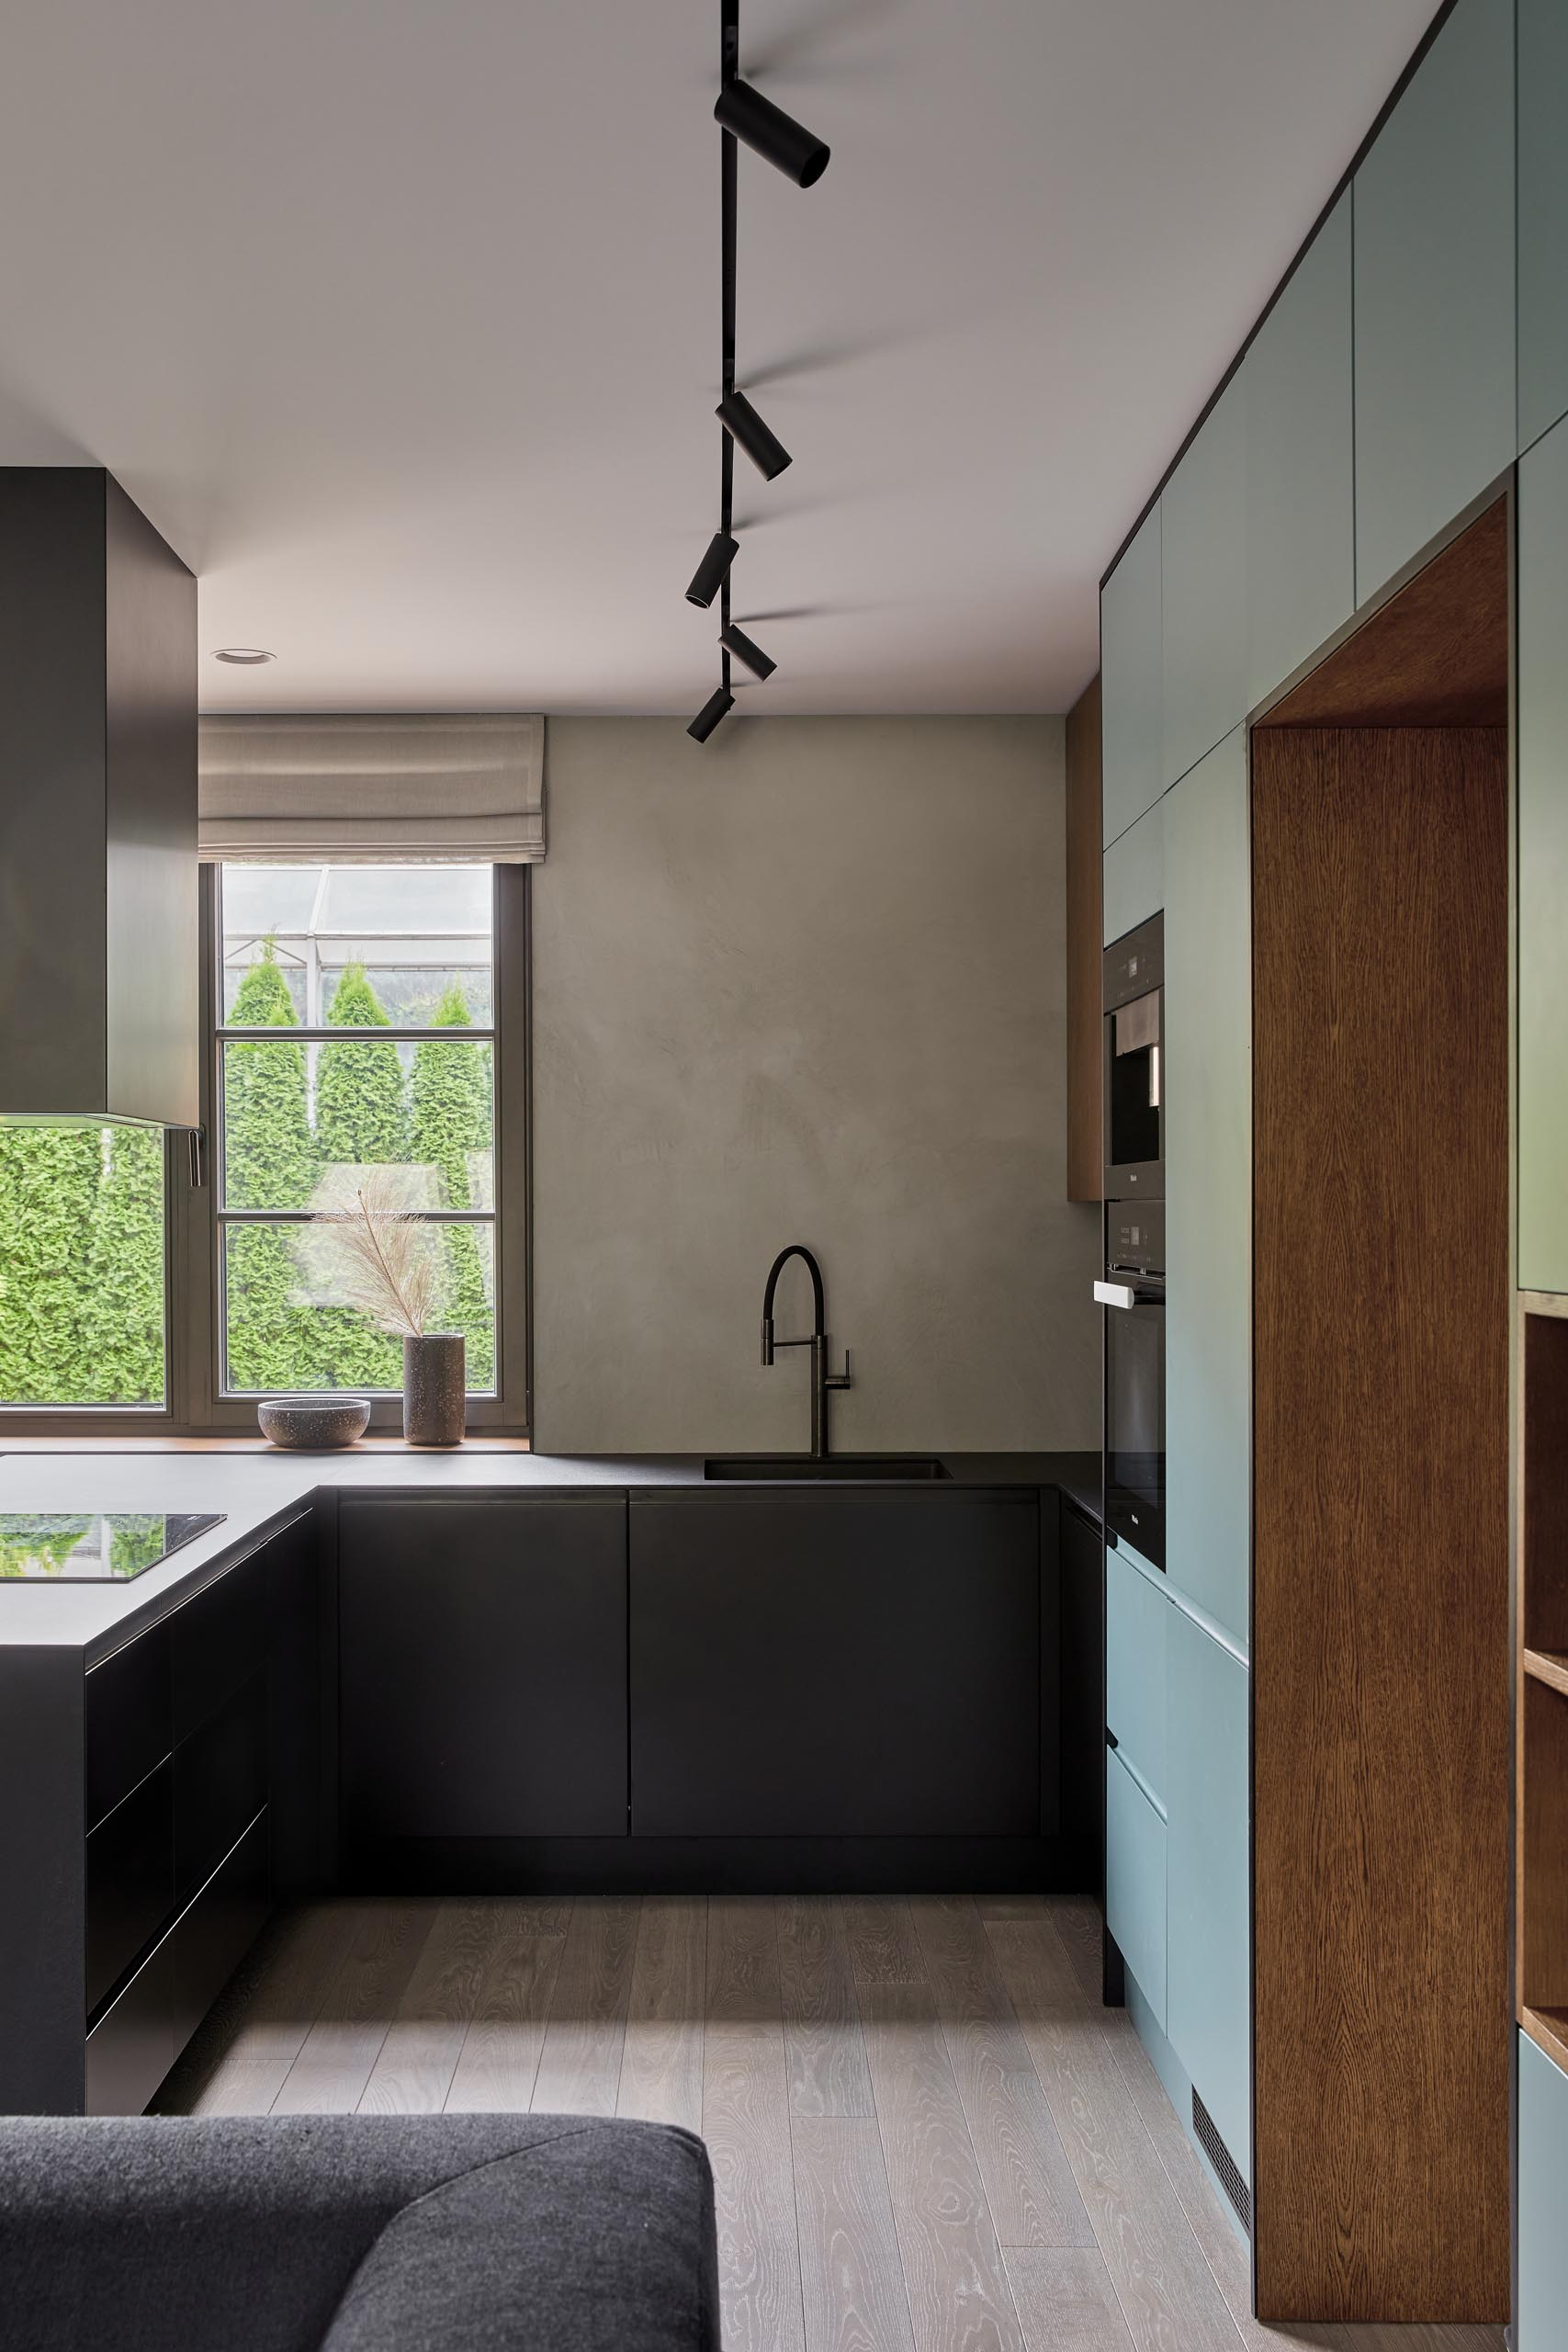 An open plan room living room, dining room, and kitchen, has a muted mint green wall that's filled with minimalist cabinetry and open wood shelving. The cabinets continue through the kitchen where they meet black cabinets and a matching countertop.